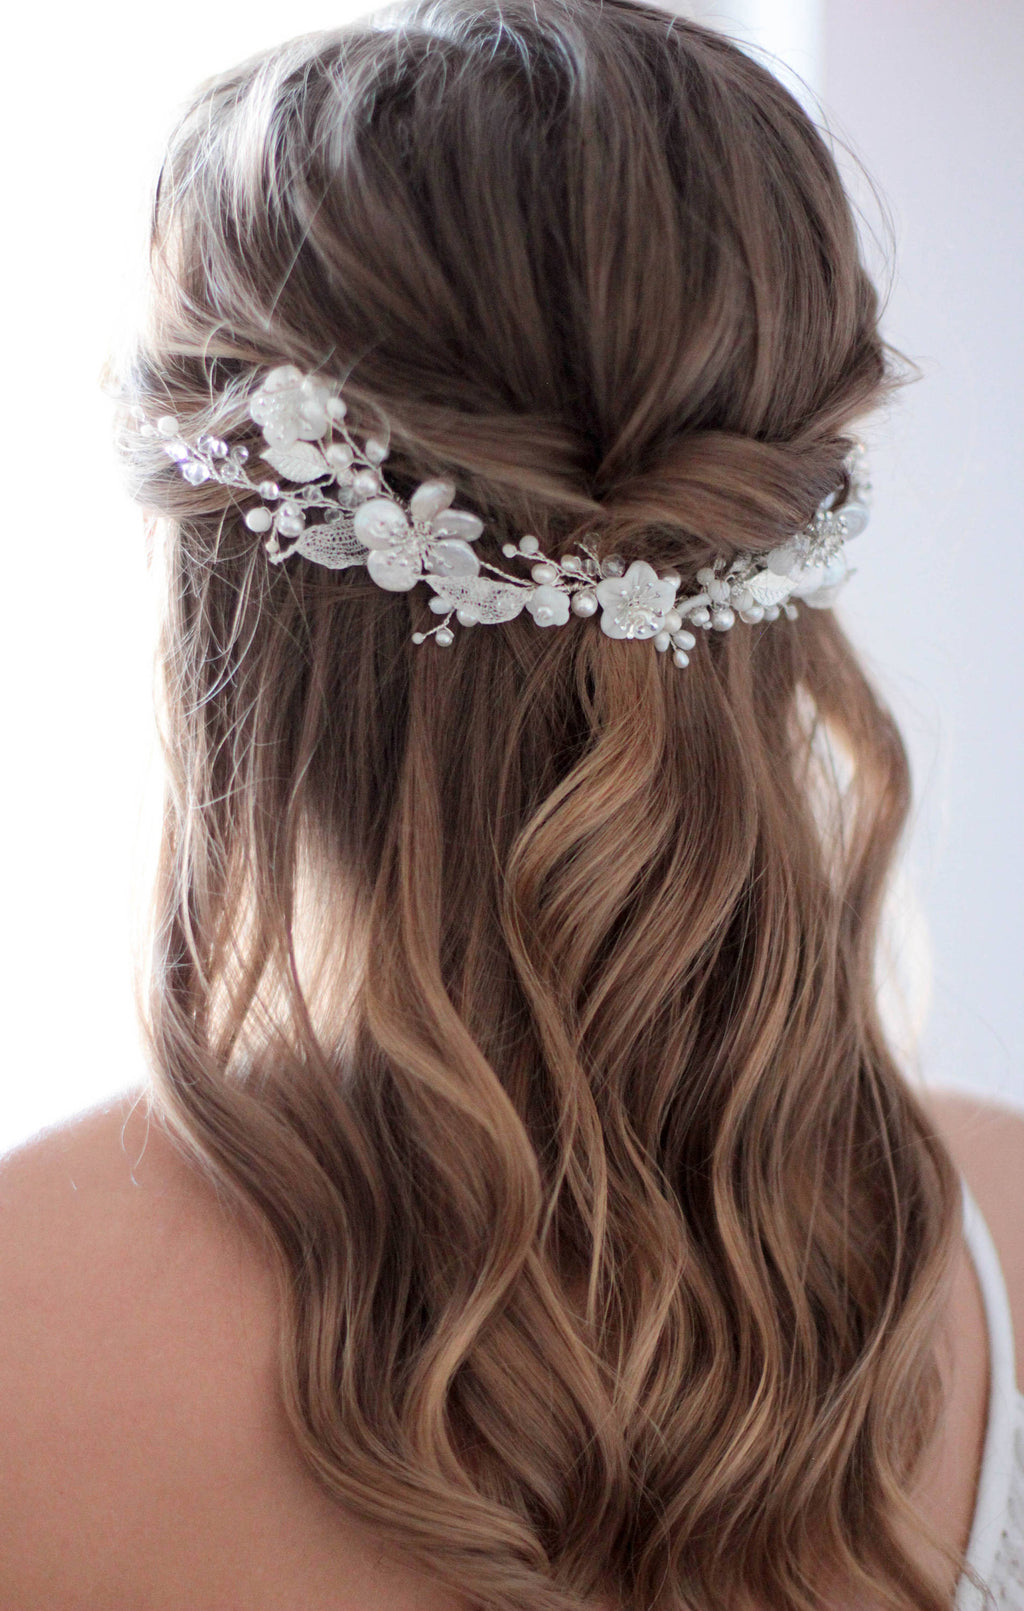 Natural Pearl Bridal Hair Piece With Mother of Pearl Adornments